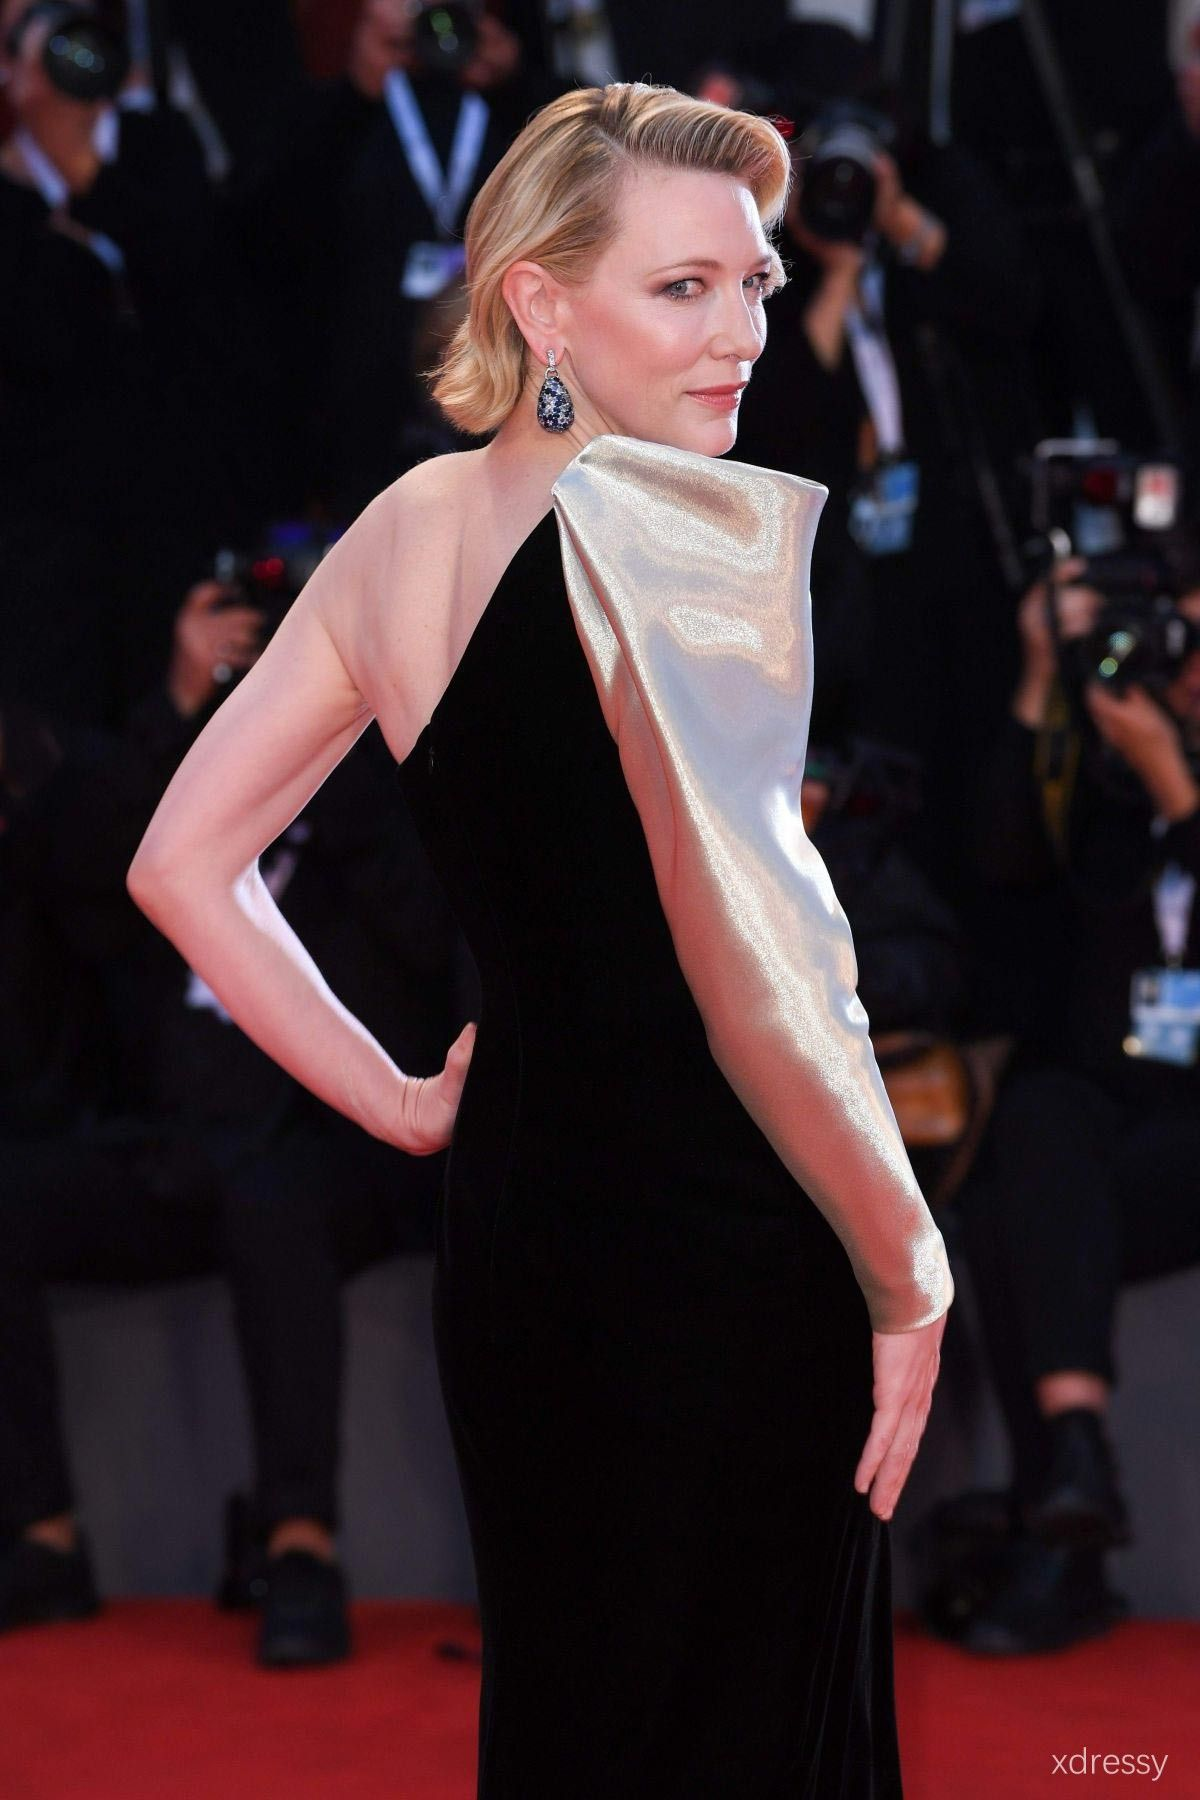 Cate blanchett asymmetrical one sleeve champagne and black dress at